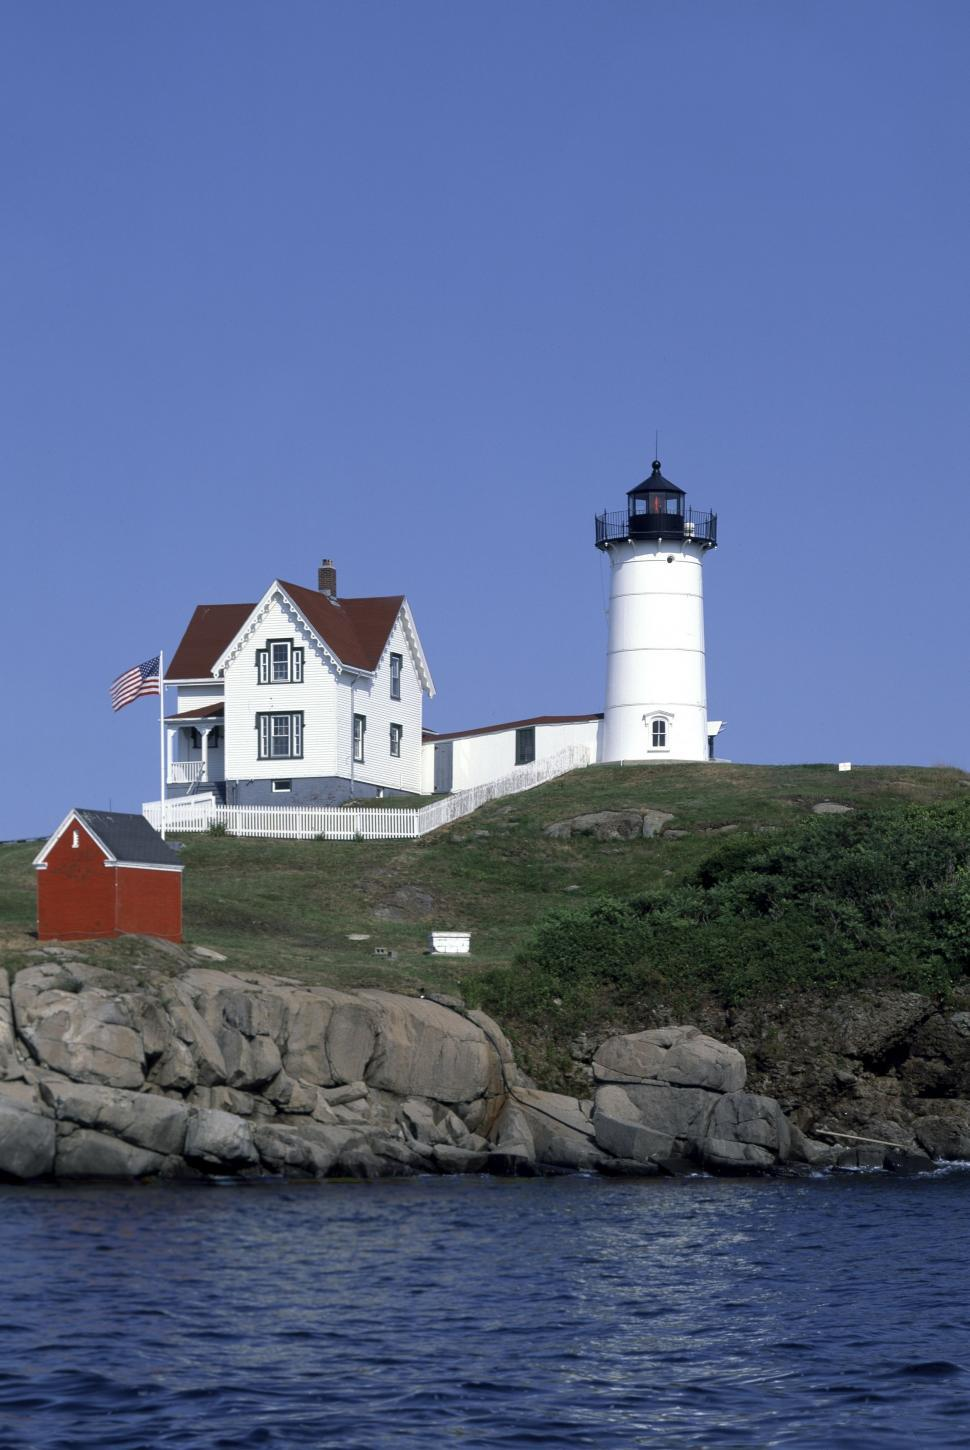 Download Free Stock HD Photo of Nubble Lighthouse - USA  Online